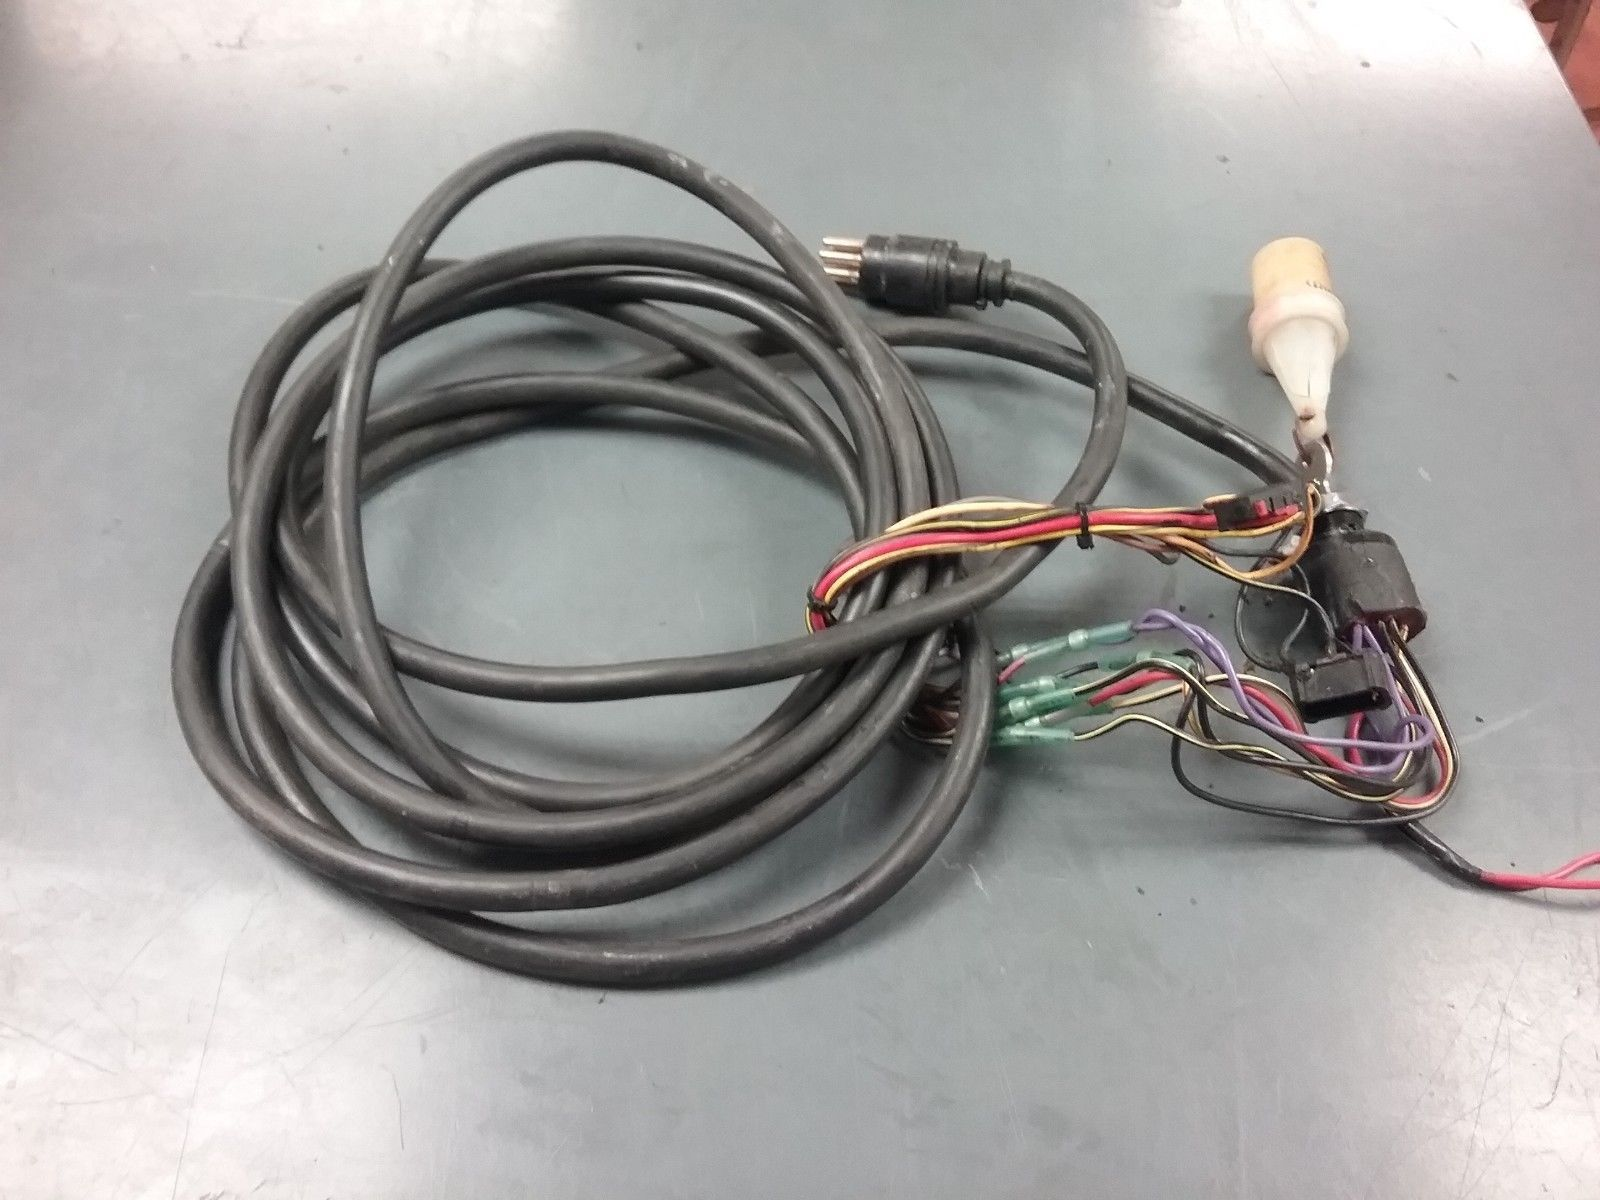 hight resolution of wiring harness for a mercury outboard motor and 50 similar items 57